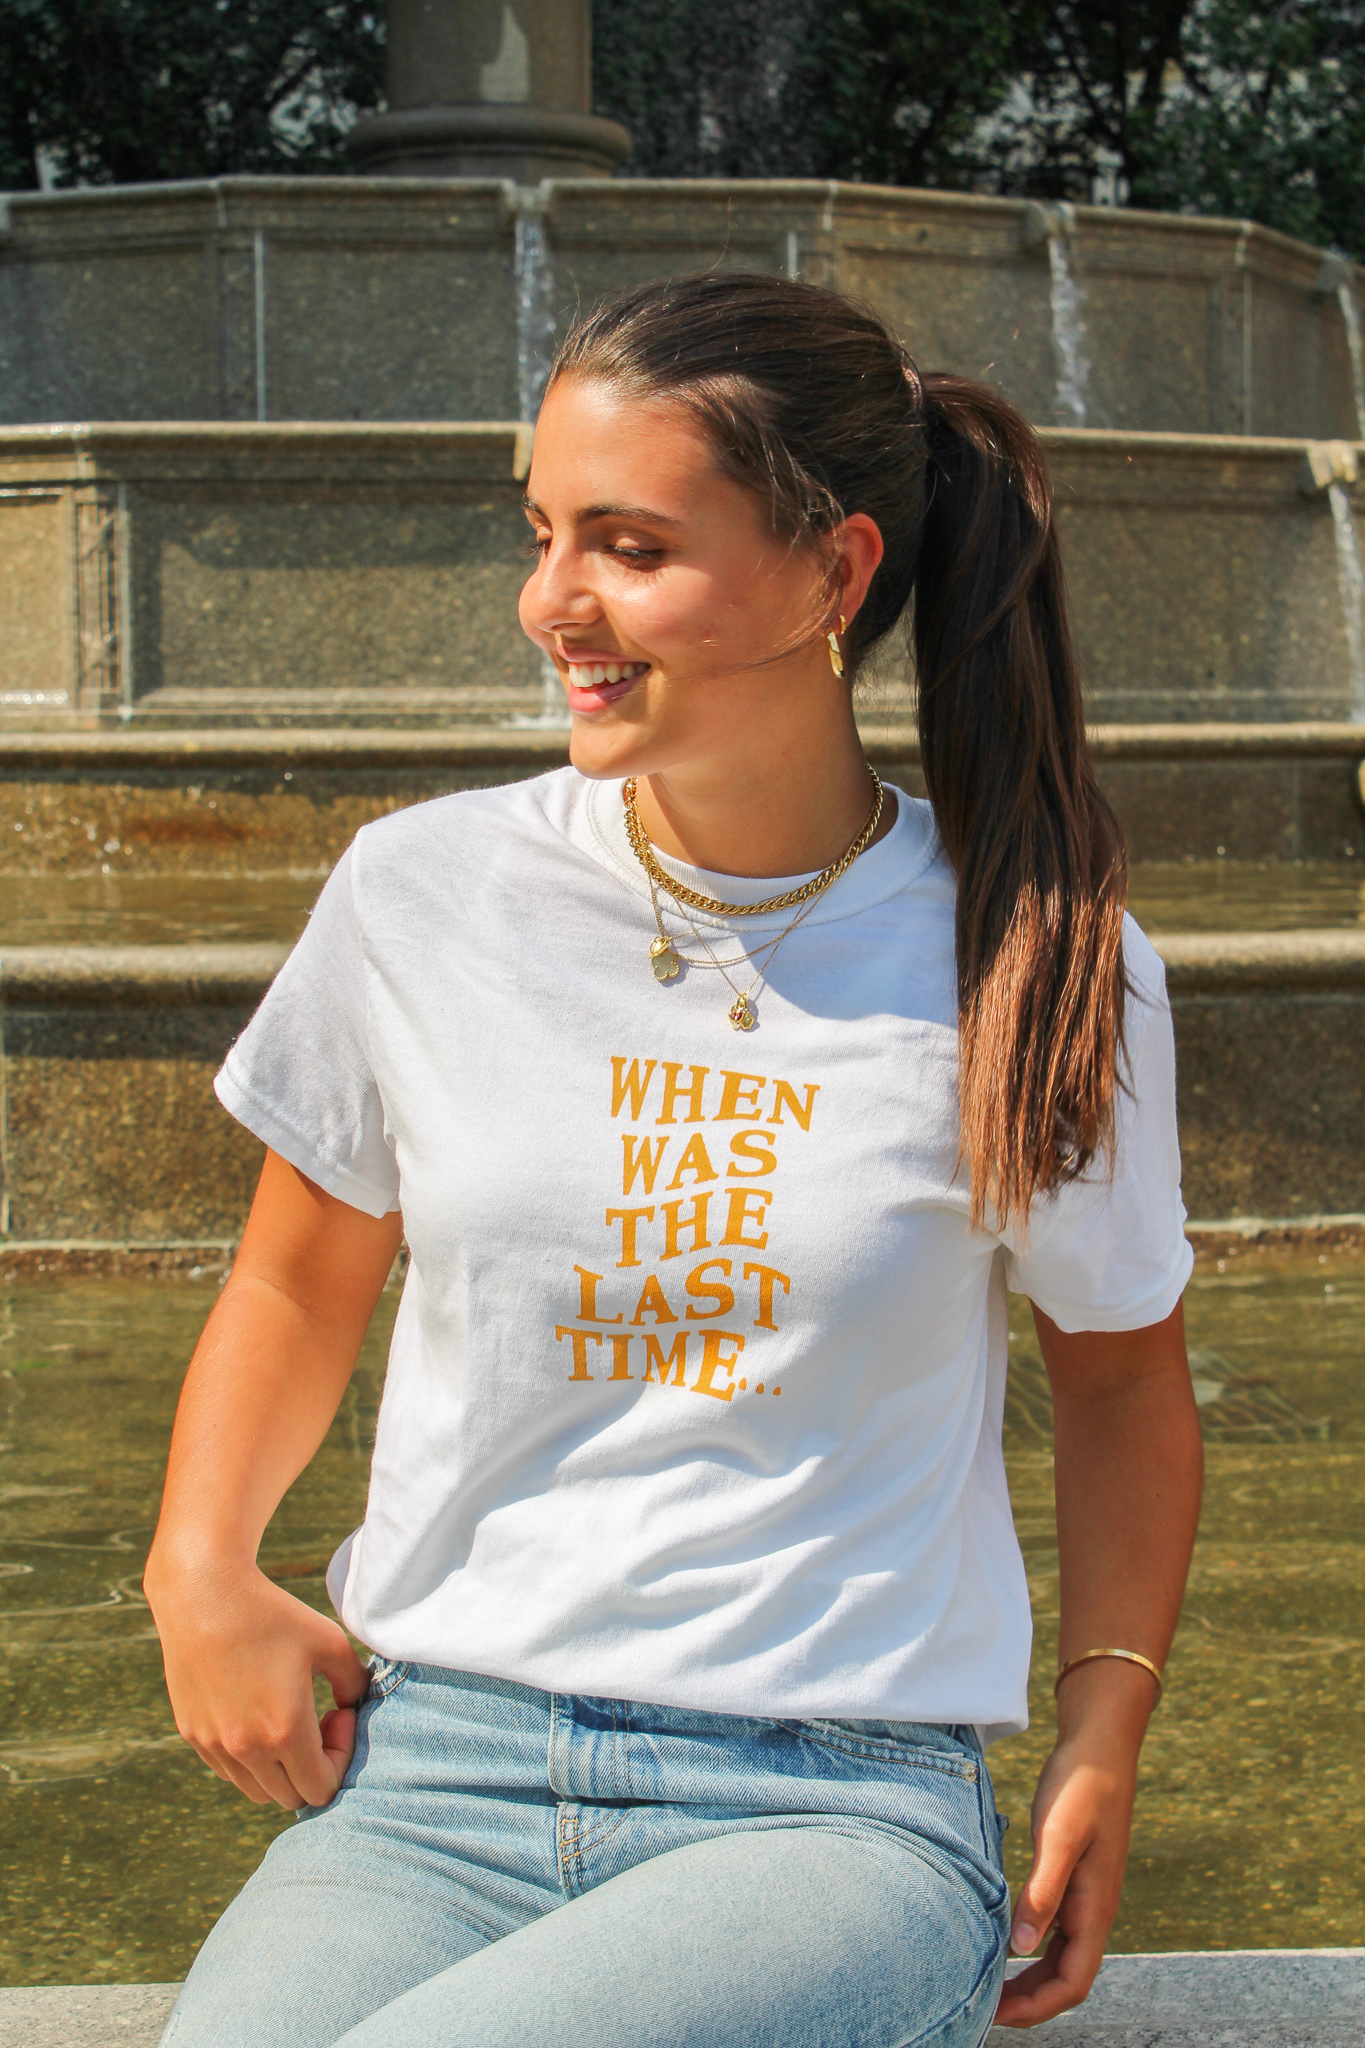 When Was the Last Time Women's Tee